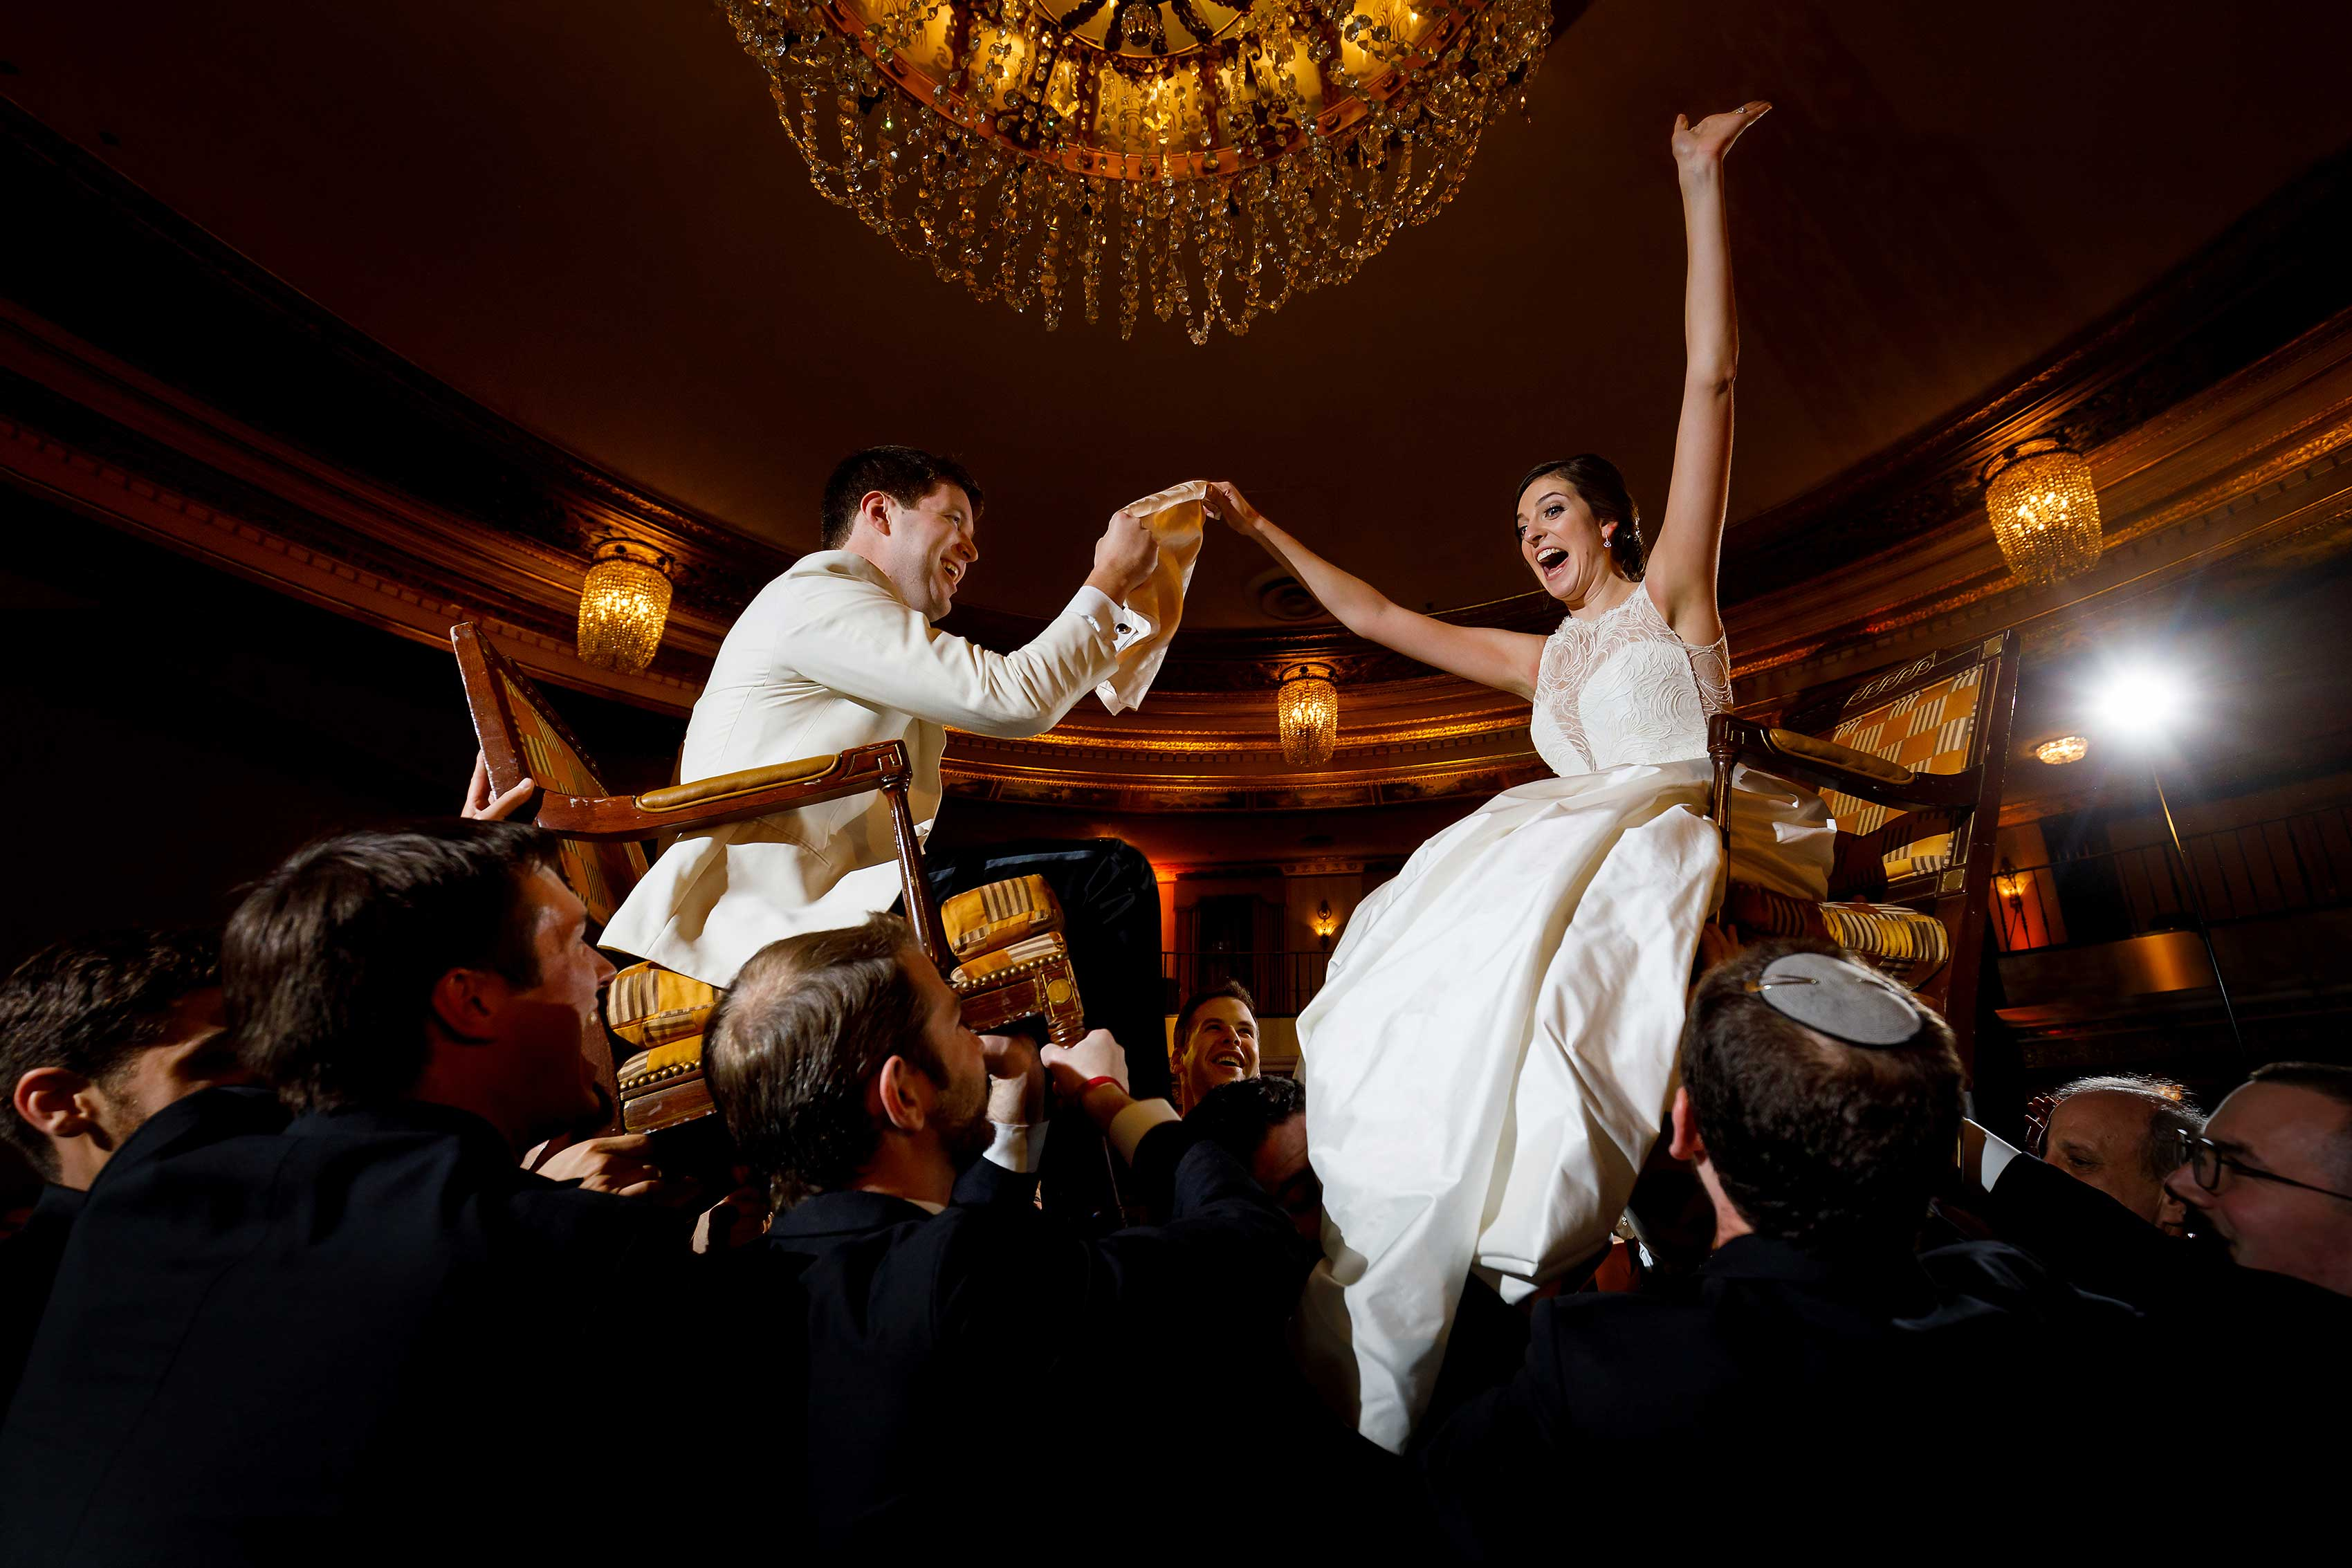 bride-and-groom-are-lifted-onto-chairs-during-the-Horah-during-Jewish-wedding-reception-at-InterContinental-Chicago-Magnificent-Mile-Hotel-31